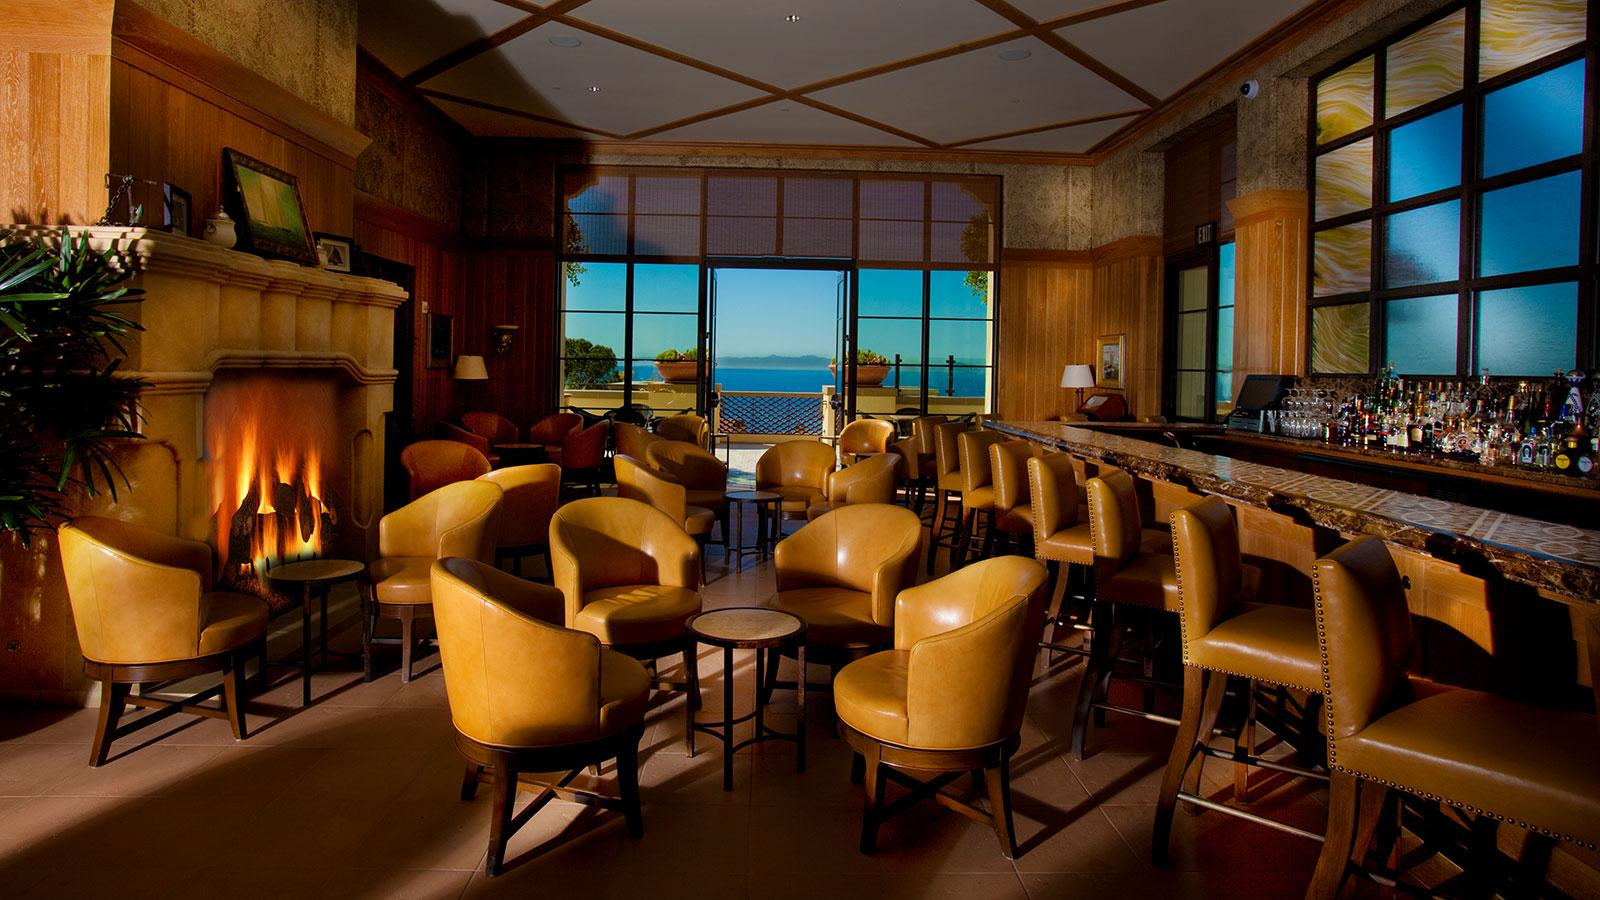 Review: Lobby Bar & Terrace, Terranea Resort, Los Angeles, California